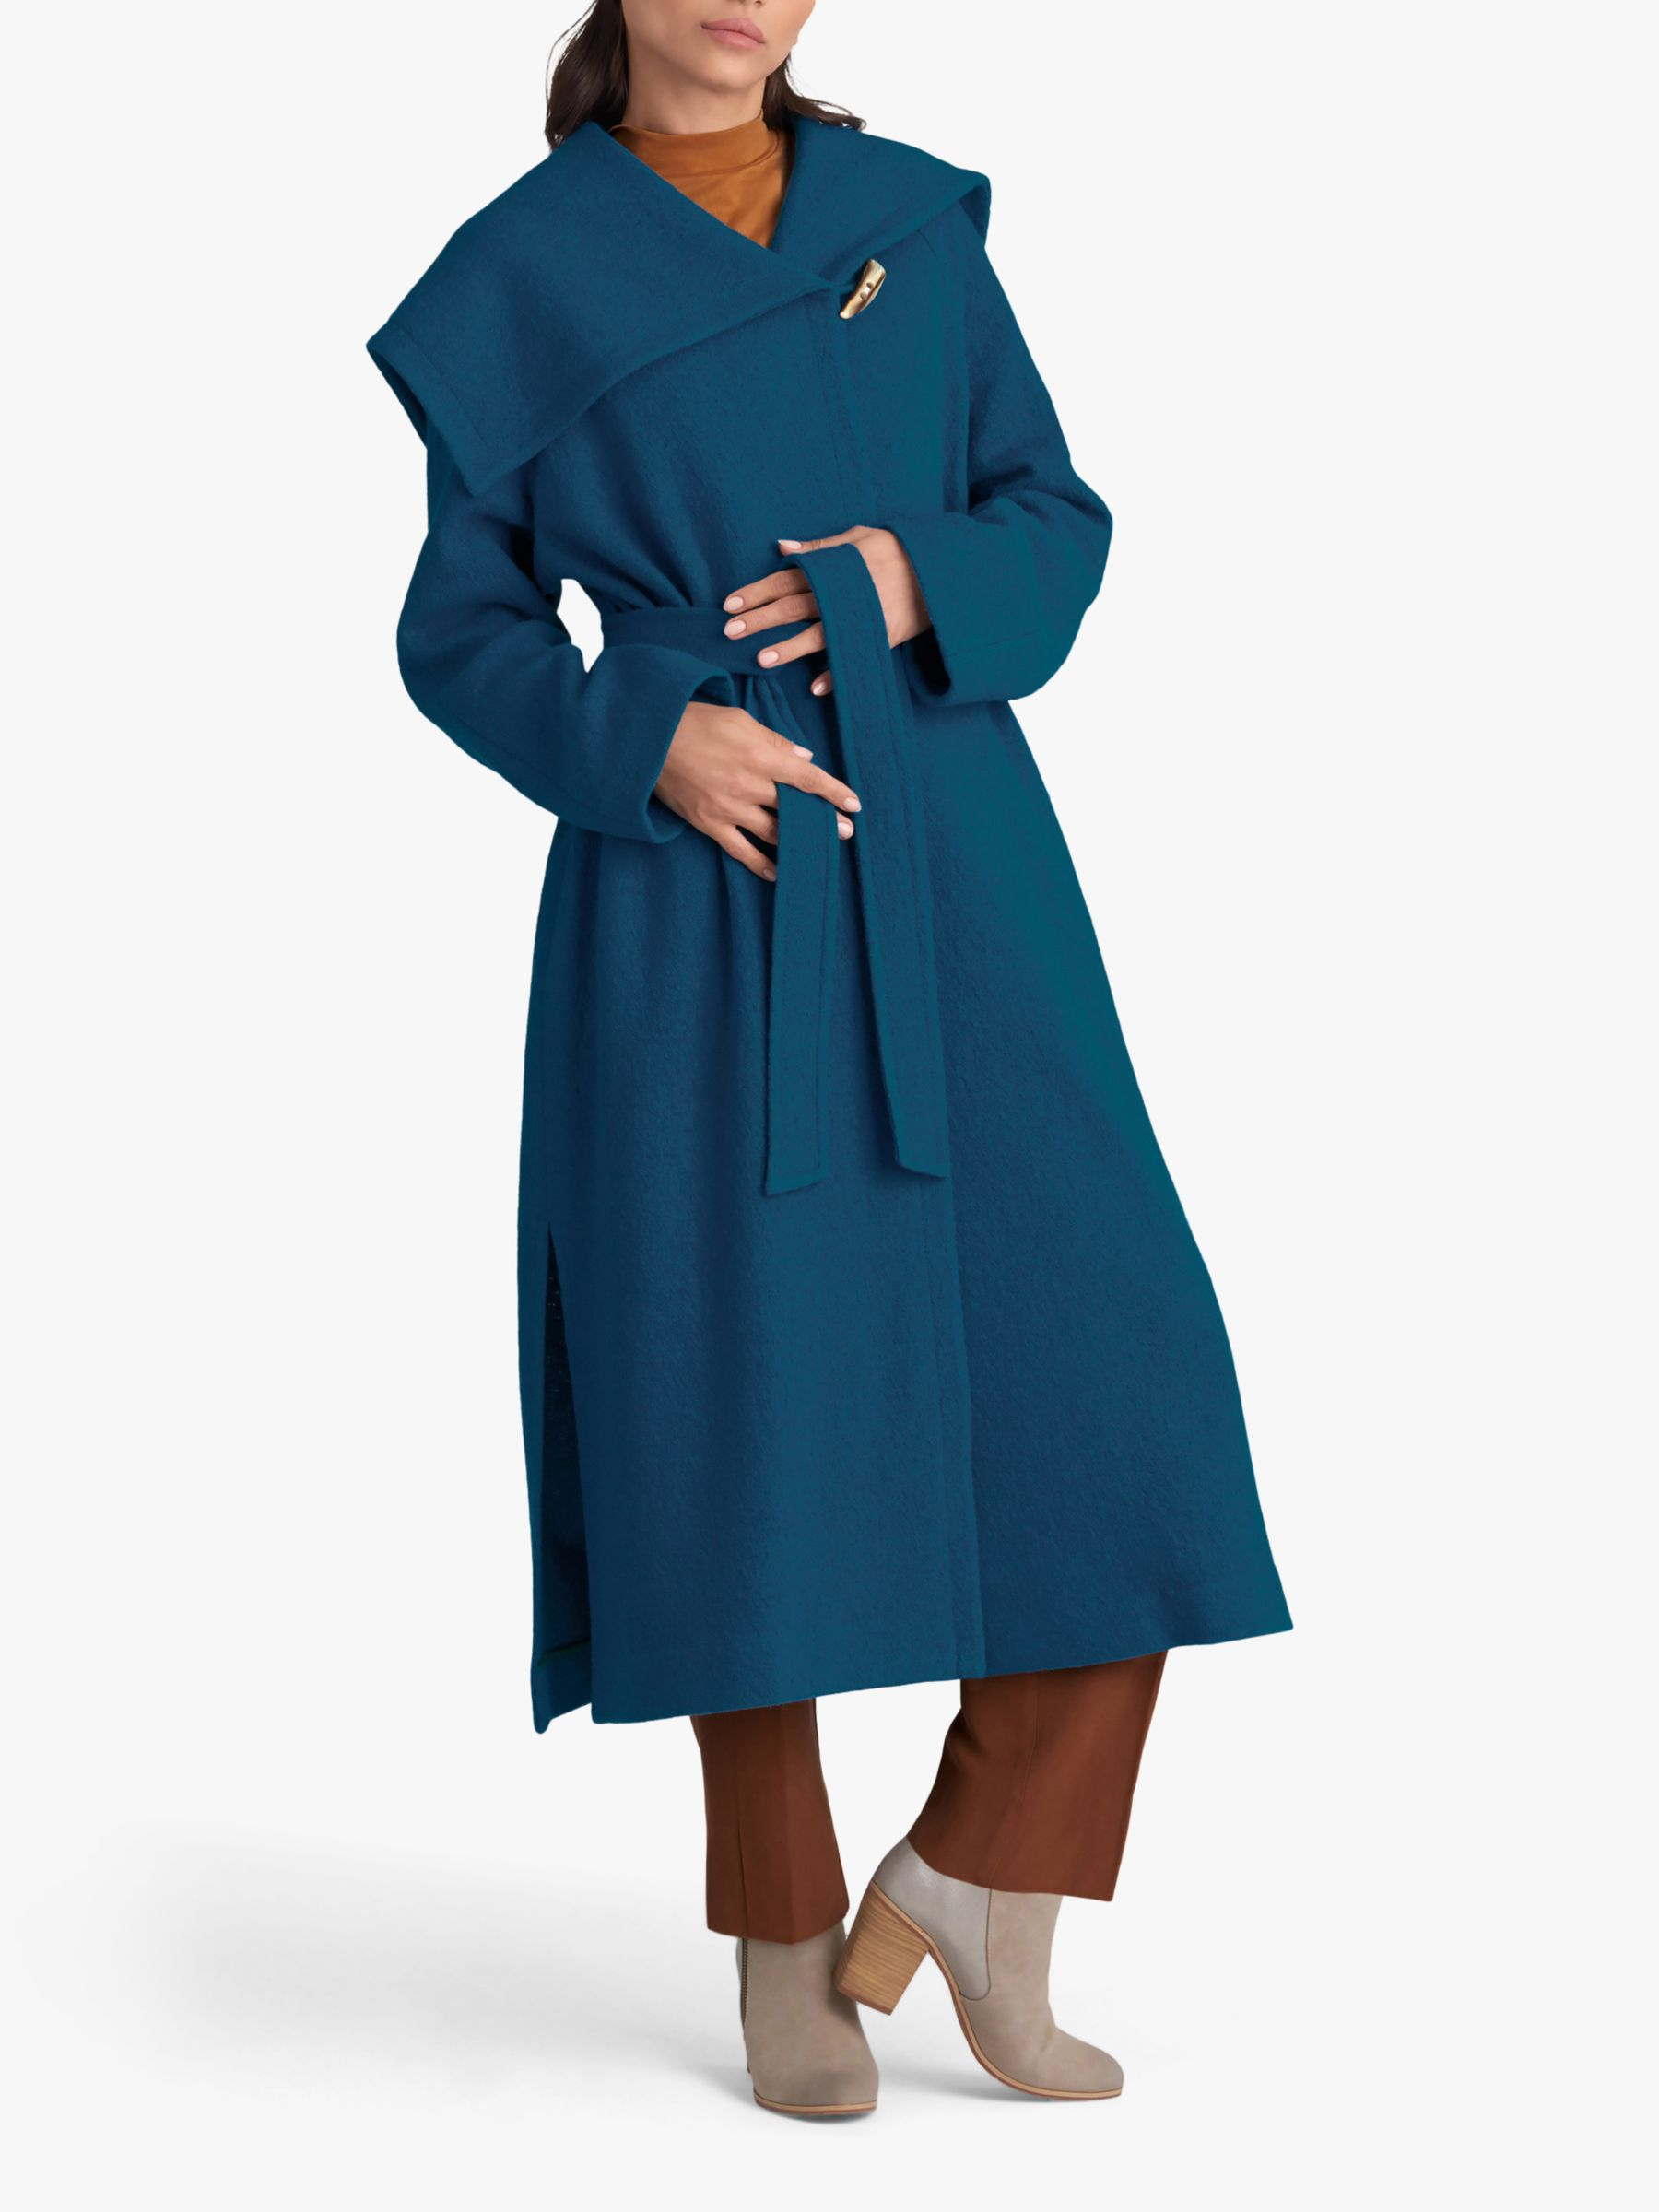 Simplicity Simplicity Misses Wrap Coat And Jacket, 9015, H5